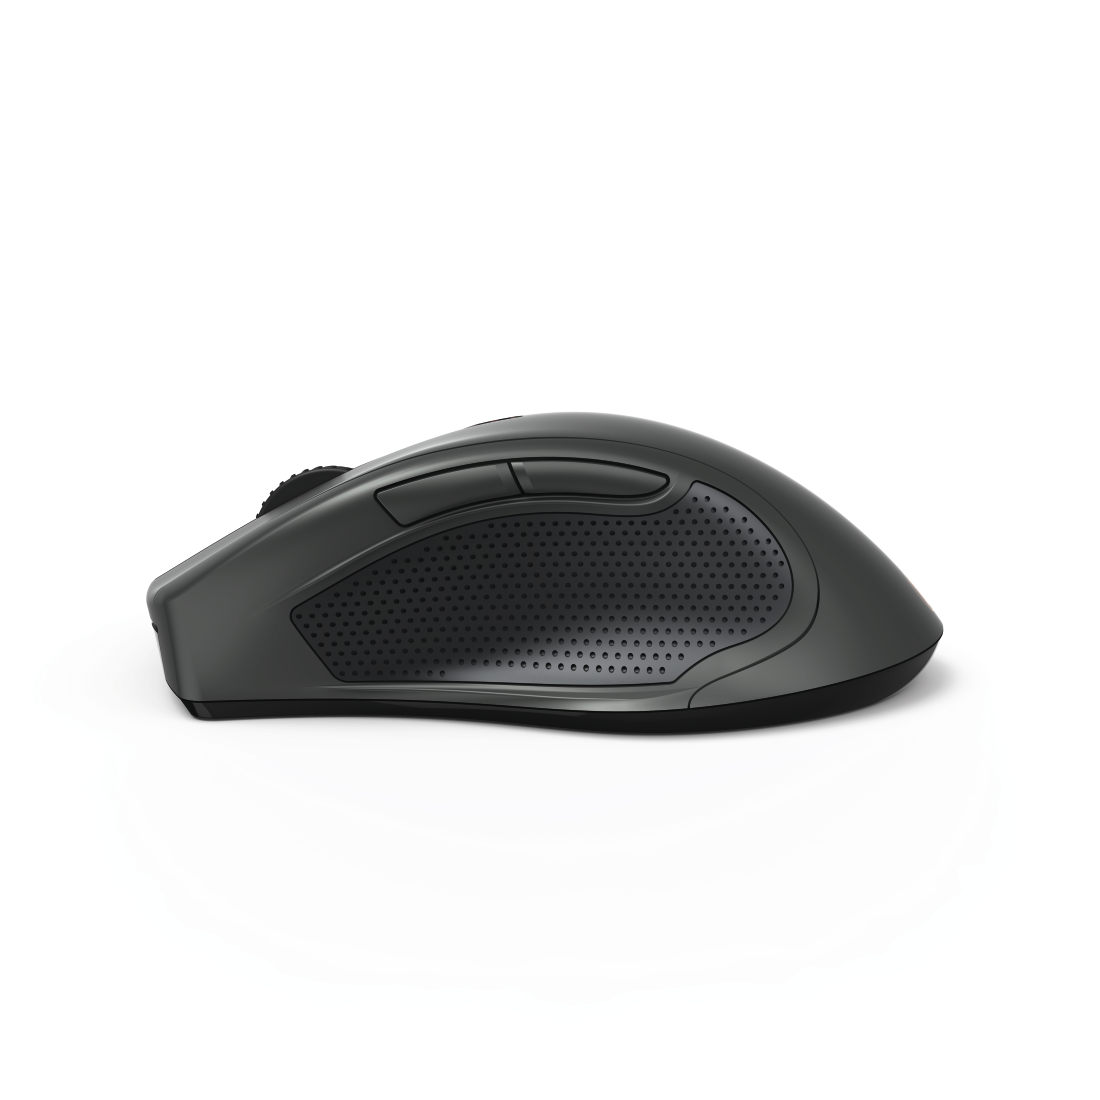 abx4 High-Res Image4 - Hama, 7-Button Mouse MW-900, black